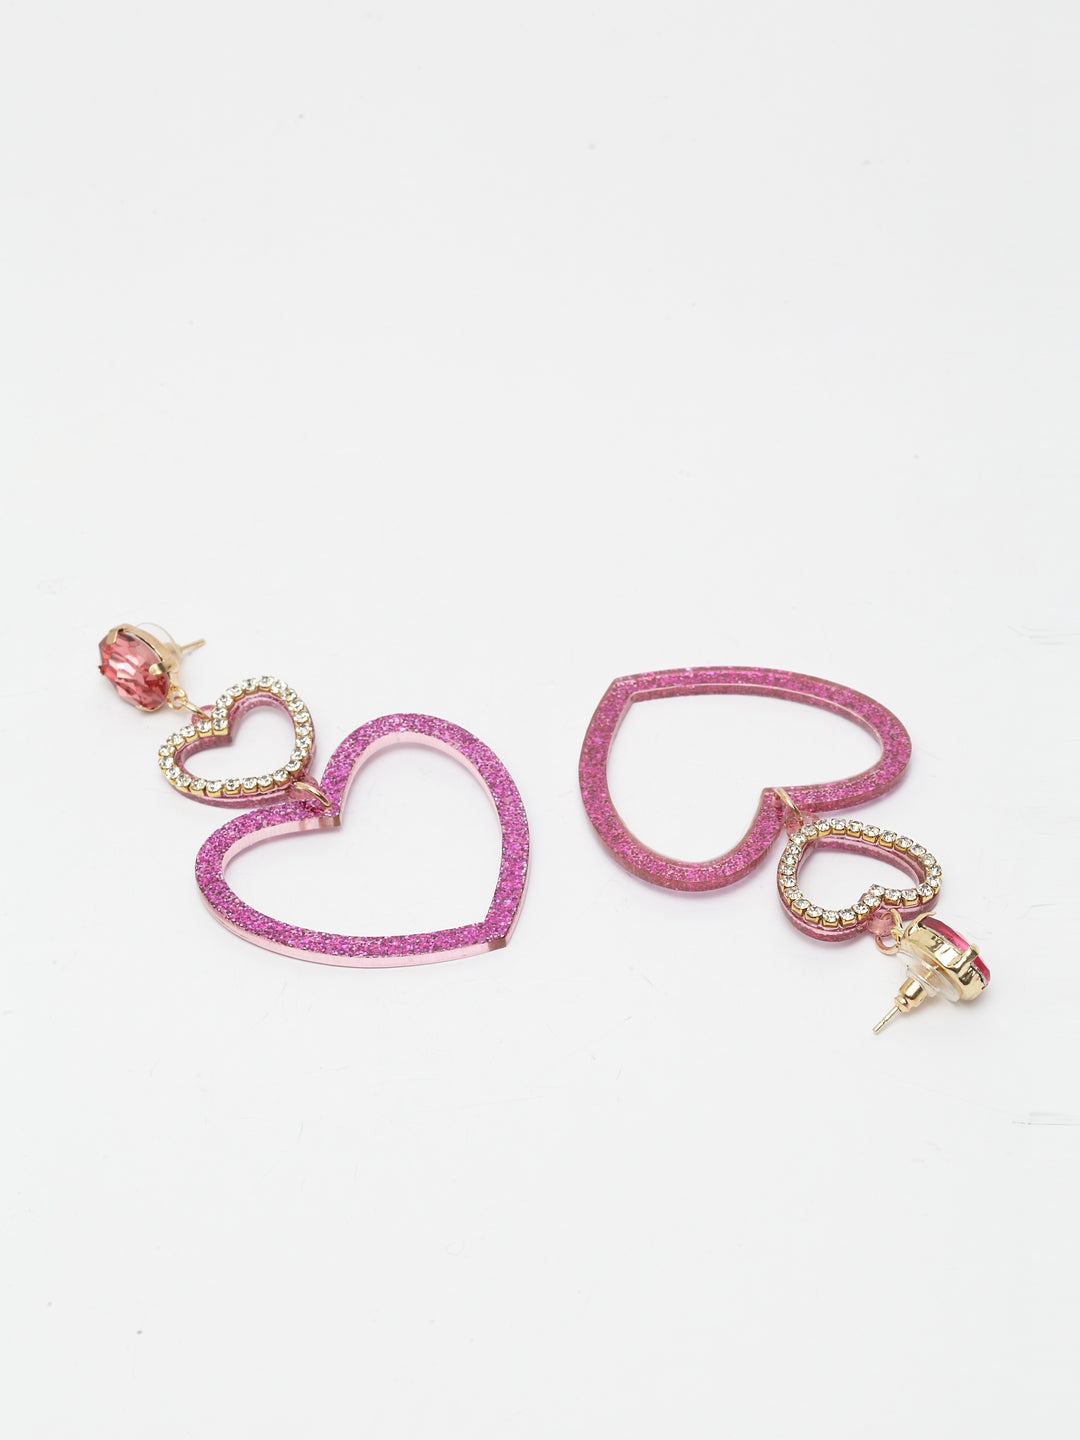 Avant-Garde Paris Double Heart Shaped Earrings In Pink